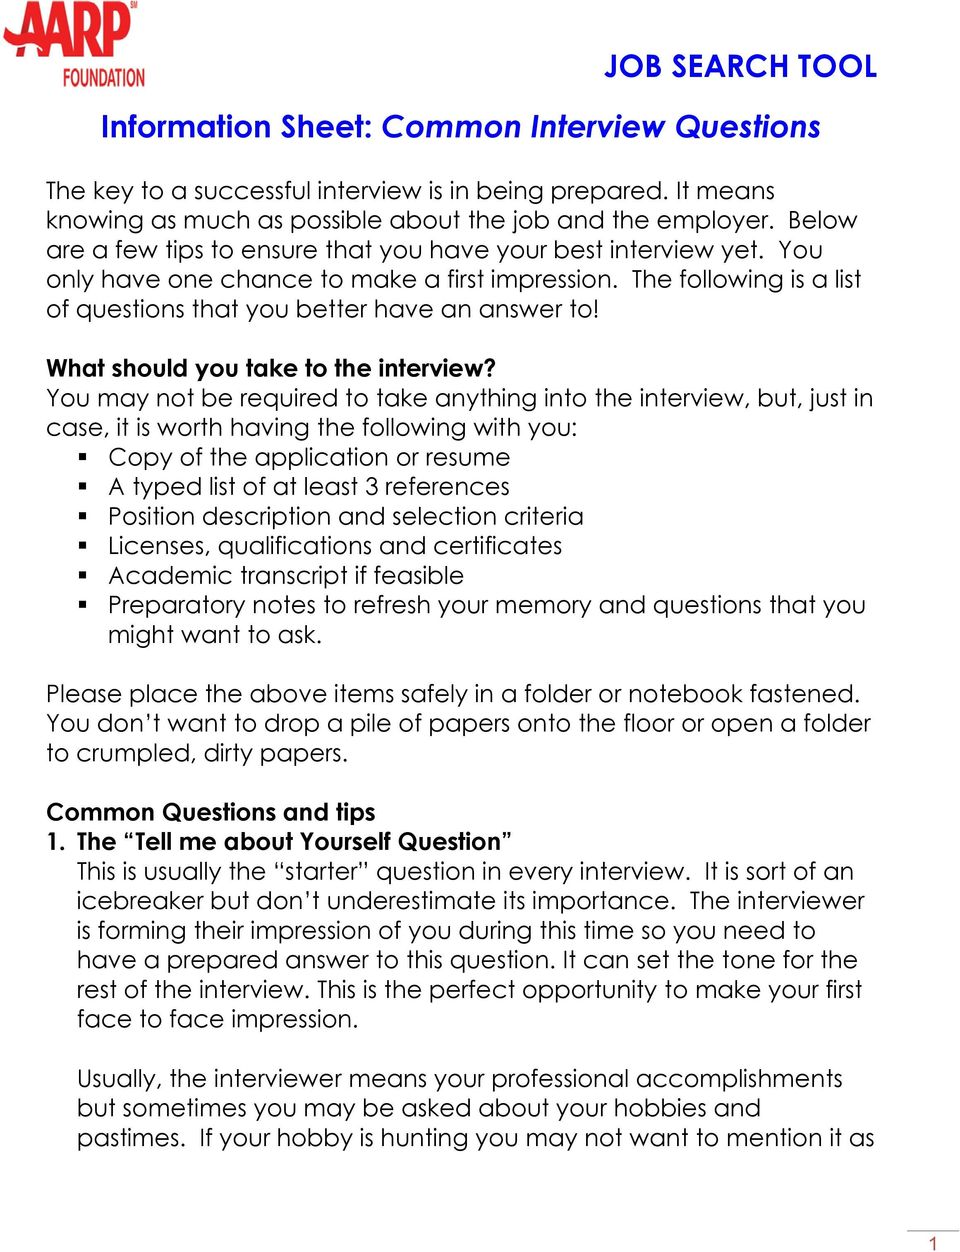 What should you take to the interview?